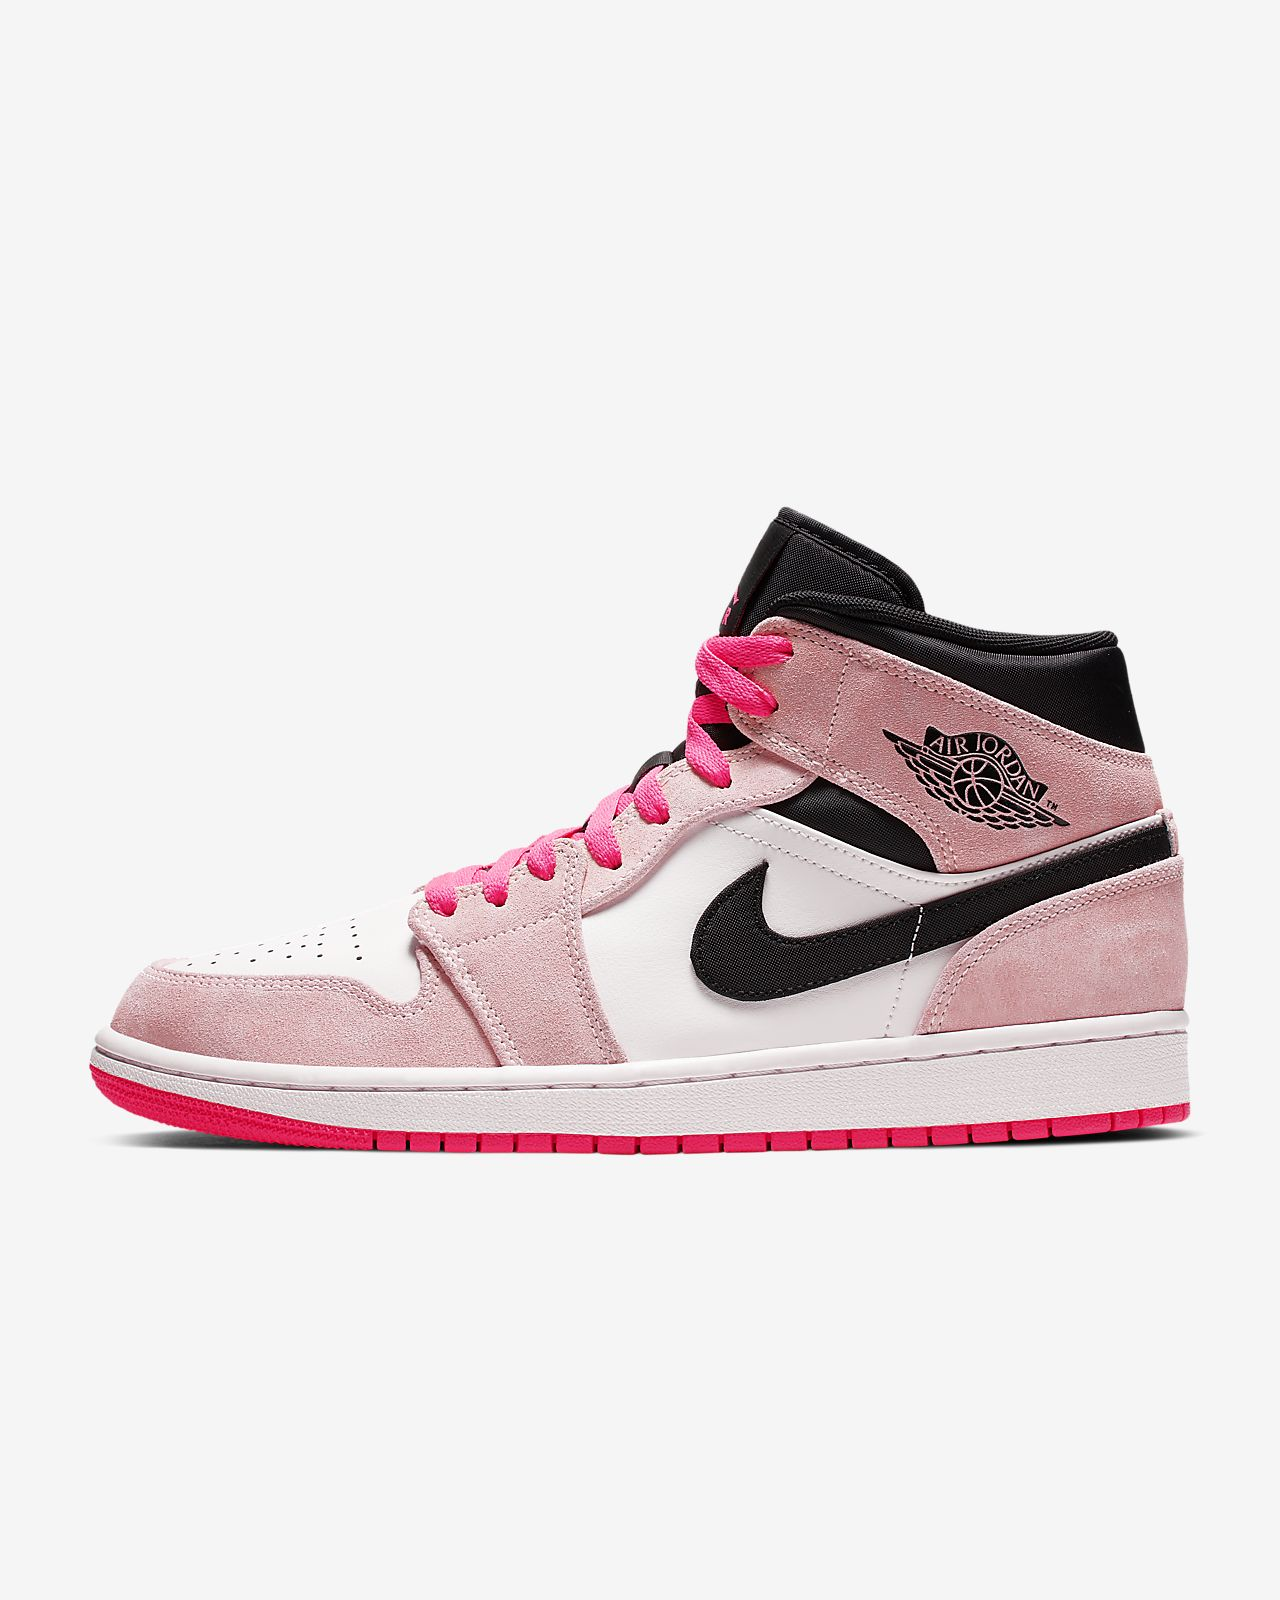 dde240cf9c4 Air Jordan 1 Mid SE Men's Shoe. Nike.com